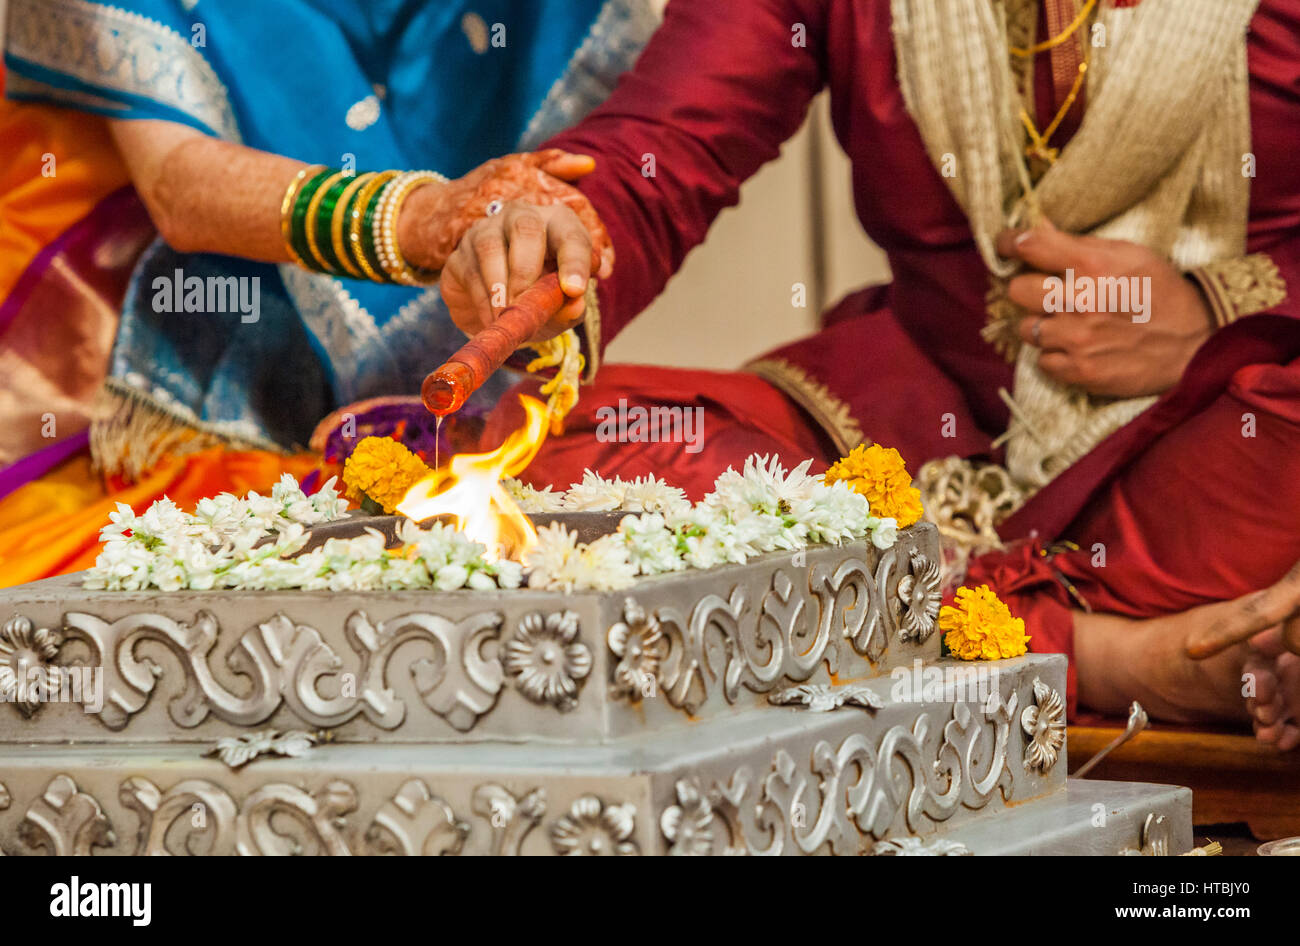 7f5321e58f9e1 The bride and groom at a Indian wedding making offerings of oil to the holy  fire